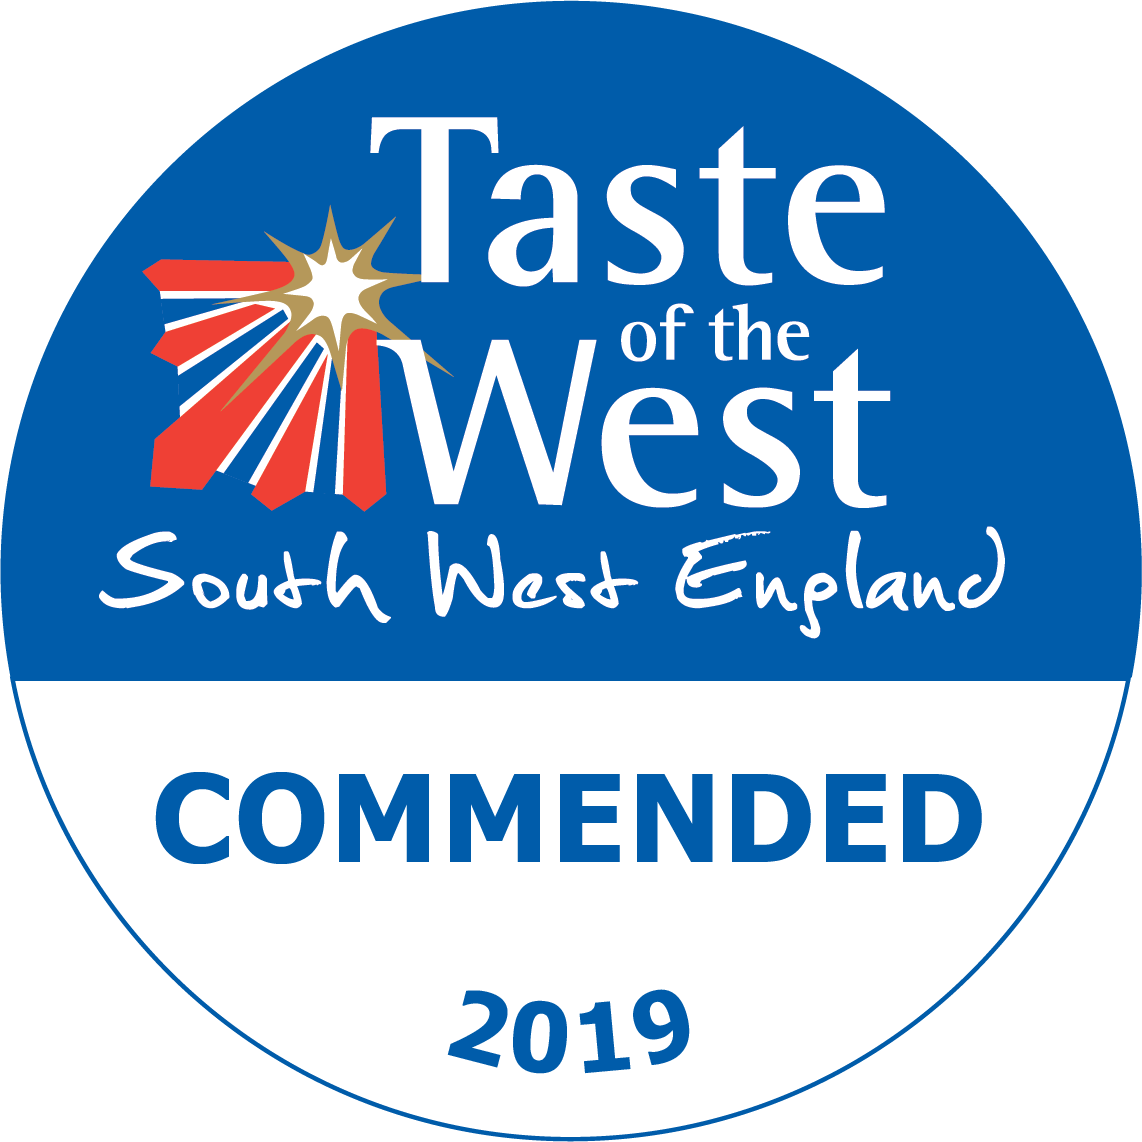 2019 Commended Taste of the West Award